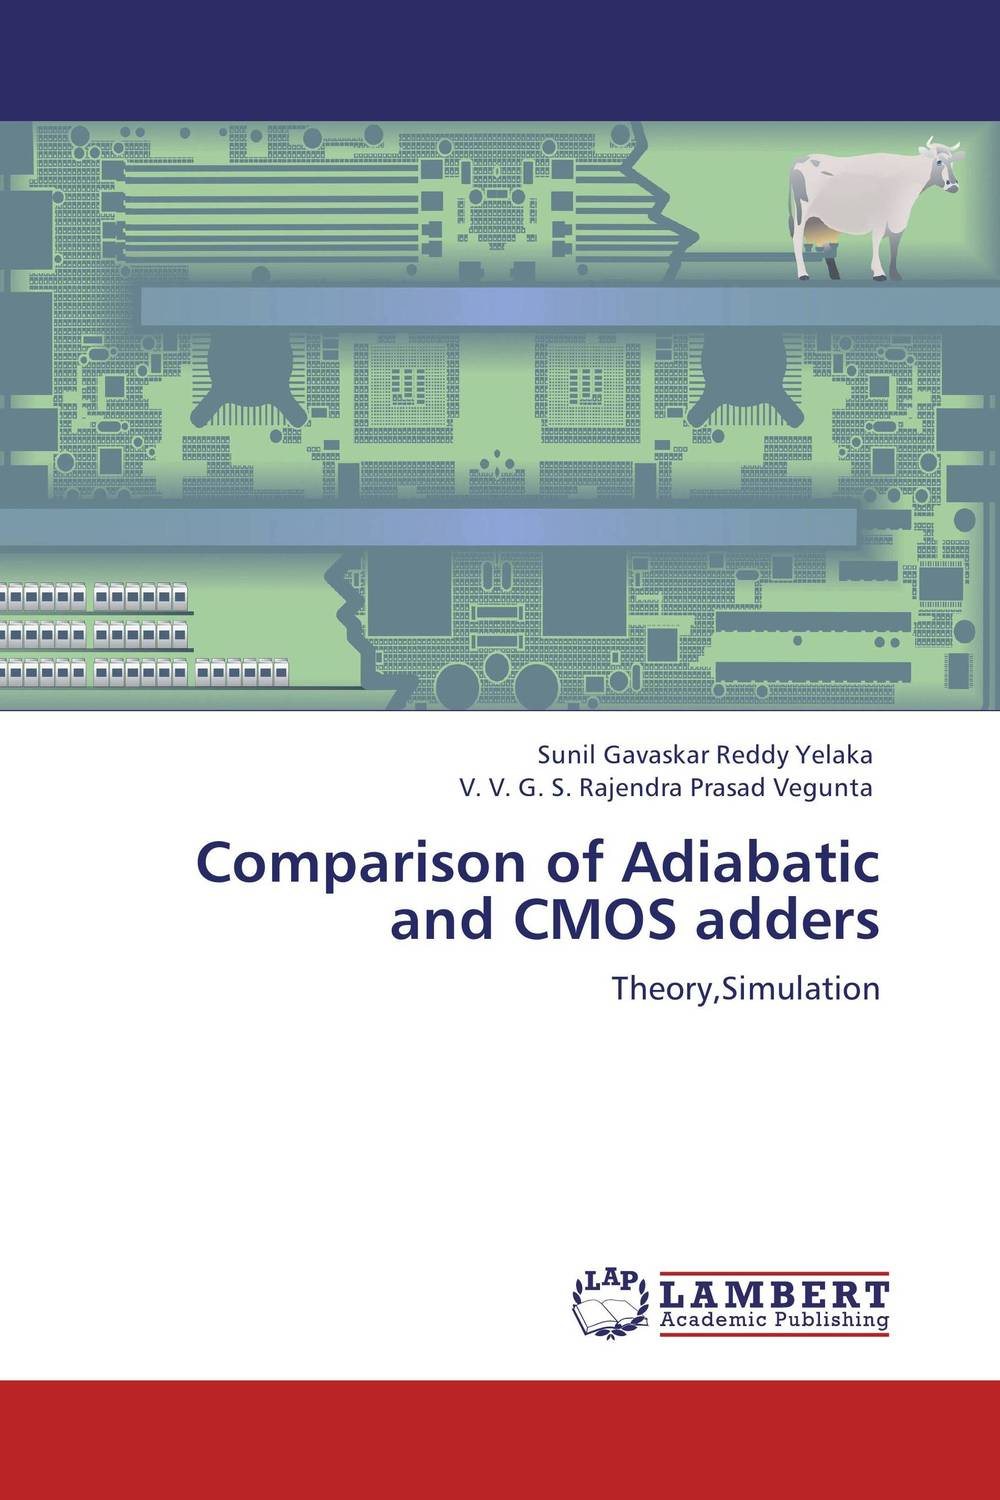 Comparison of Adiabatic and CMOS adders